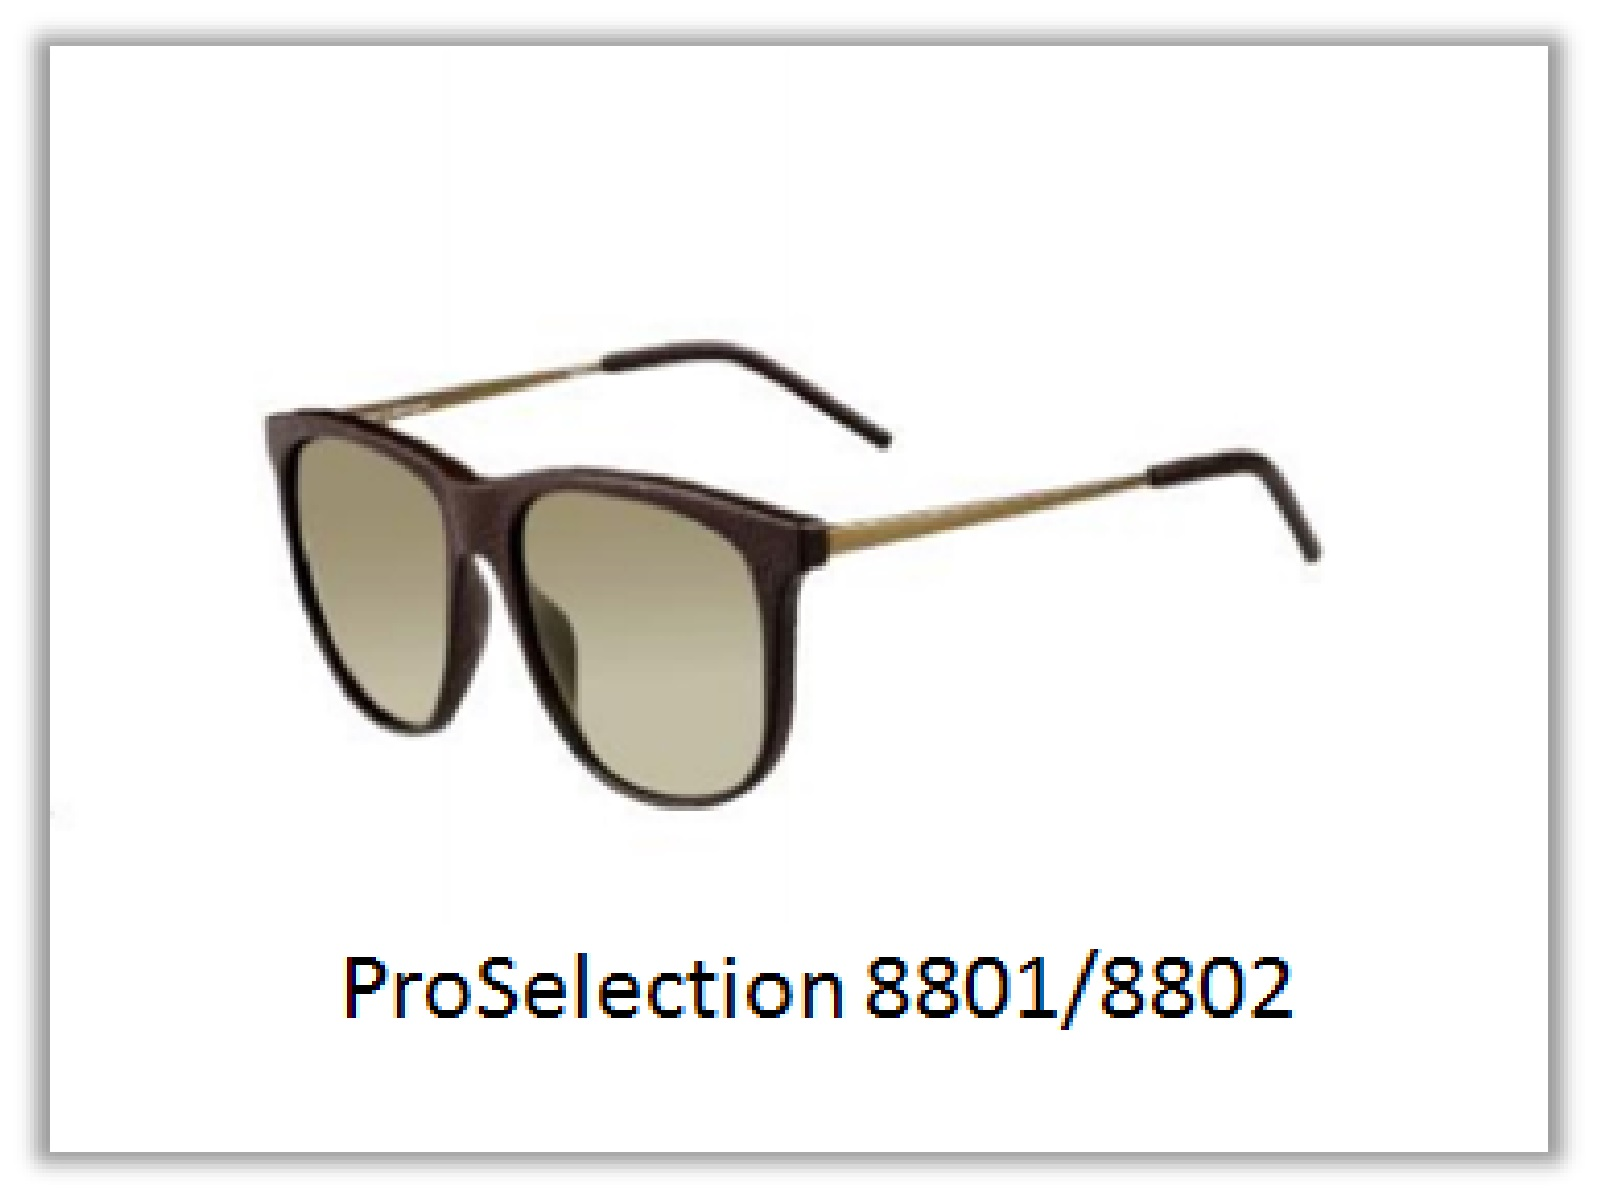 proselection 8801